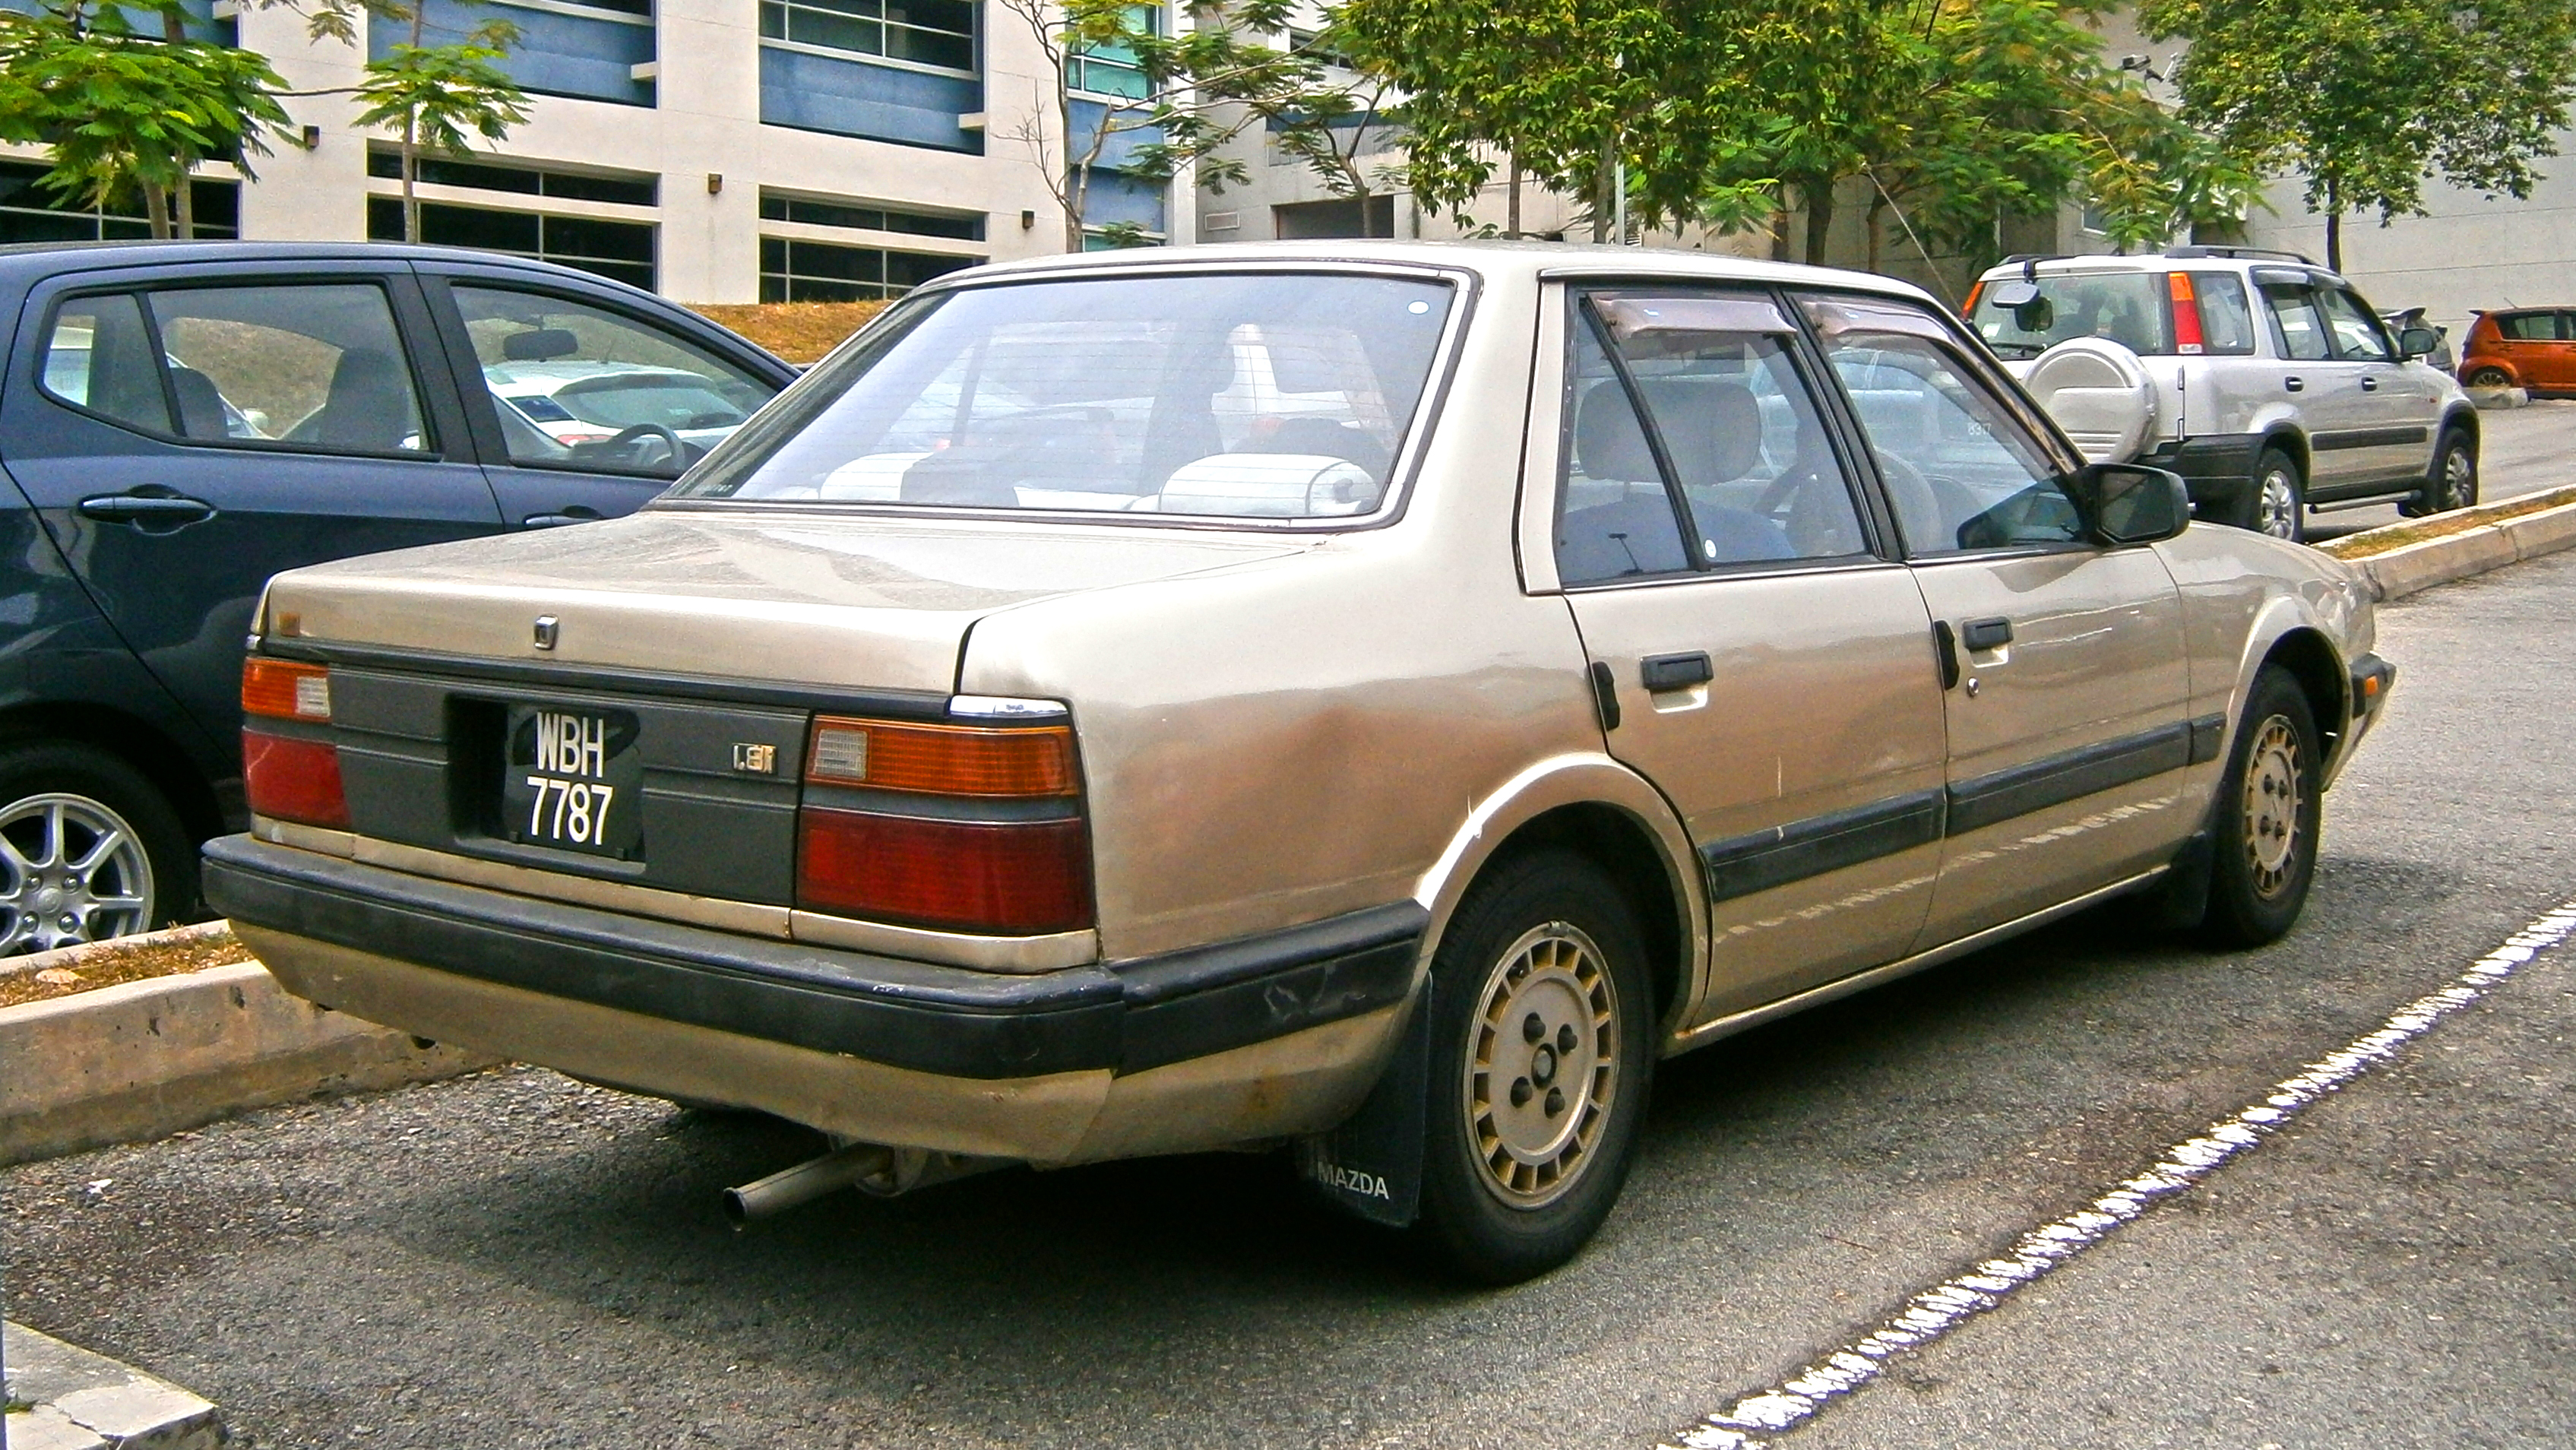 File:1987 Mazda 626 (GC) 1.8i 4-door sedan (19734754942).jpg ...